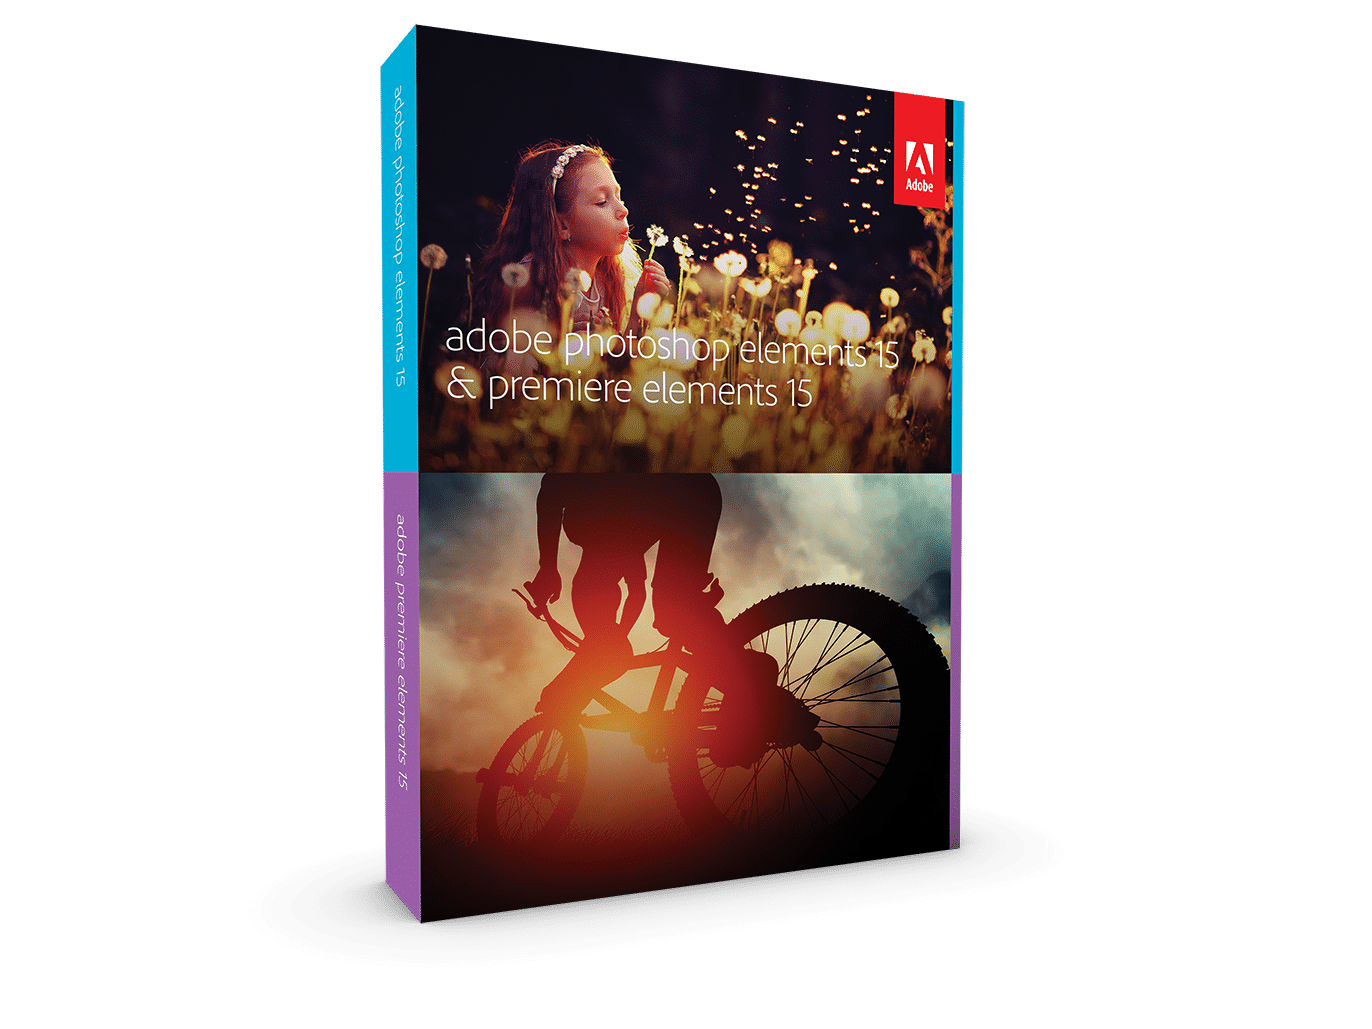 3d-photoshop-elements-15-and-premiere-elements-15-box-shot-with-shadow-1